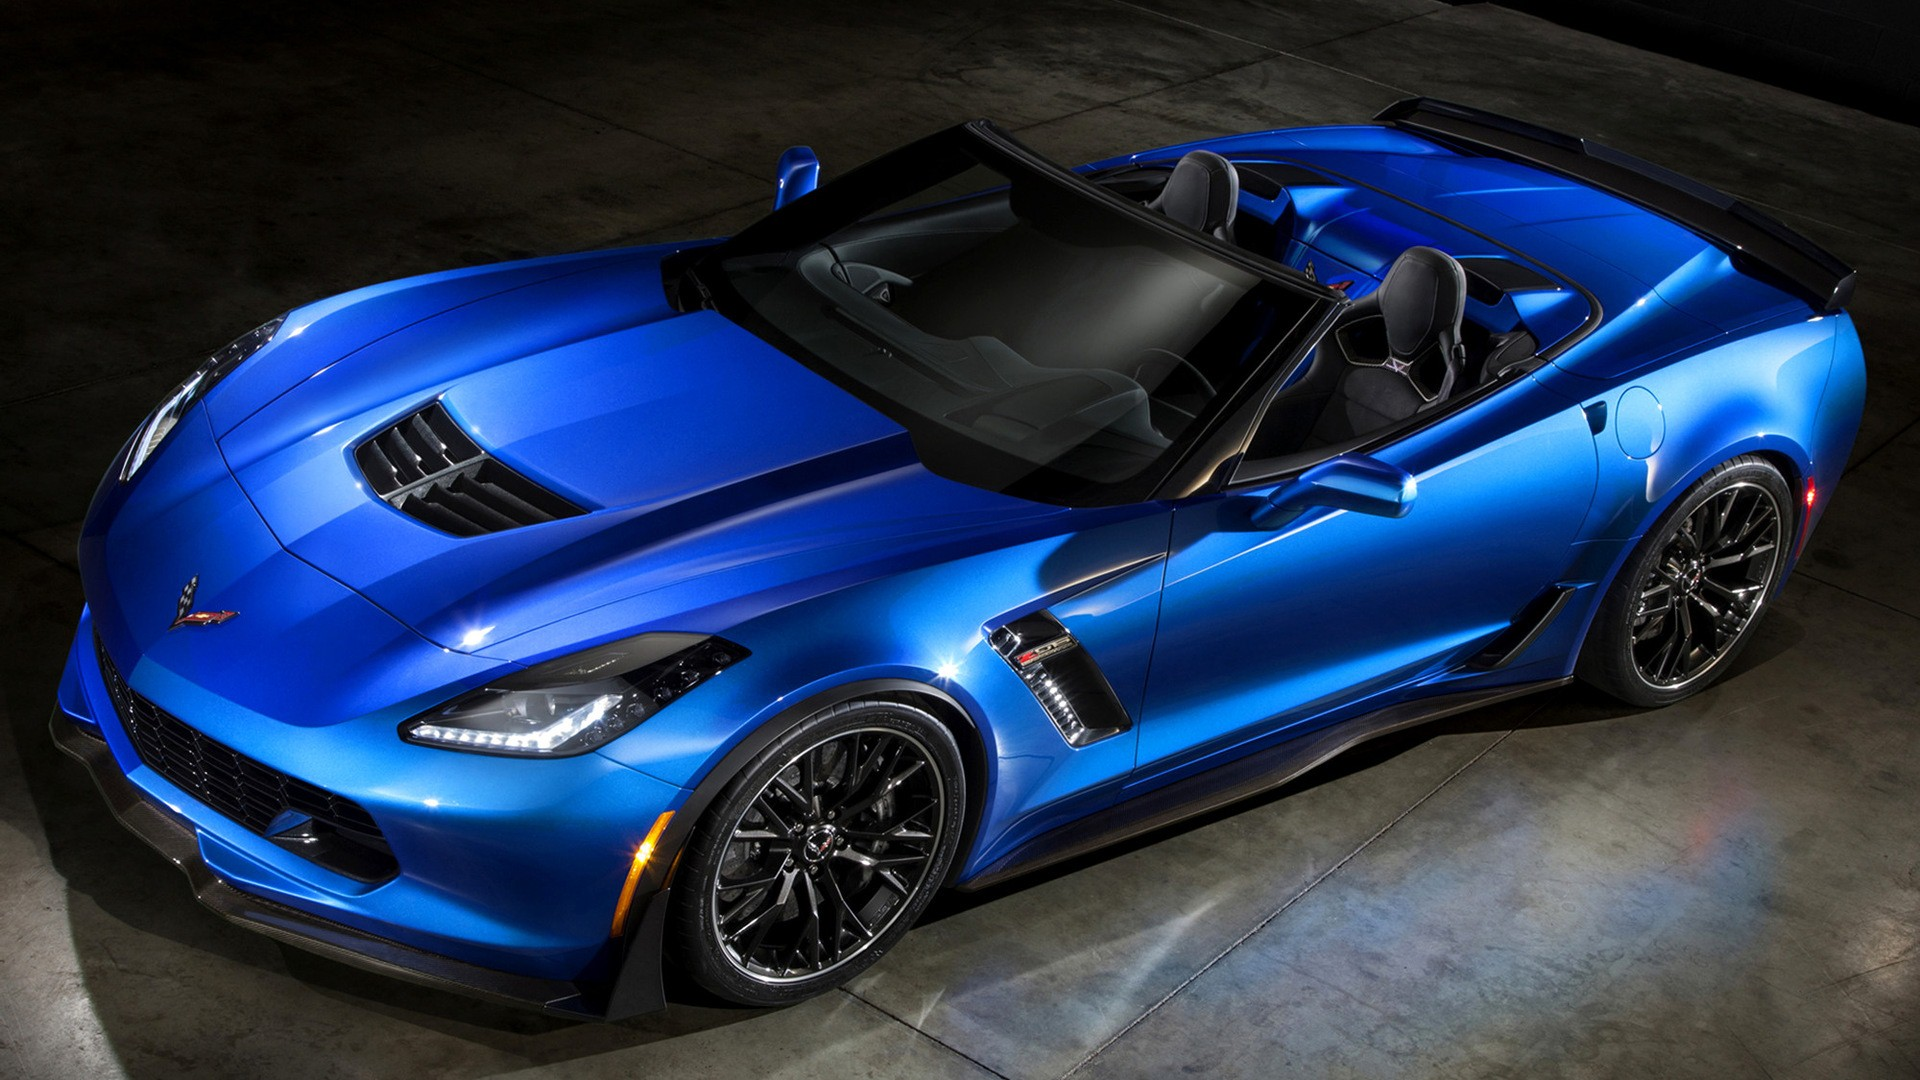 Corvette Z06 Convertible Blue Car HD Wallpapers HD Wallpapers 1920x1080